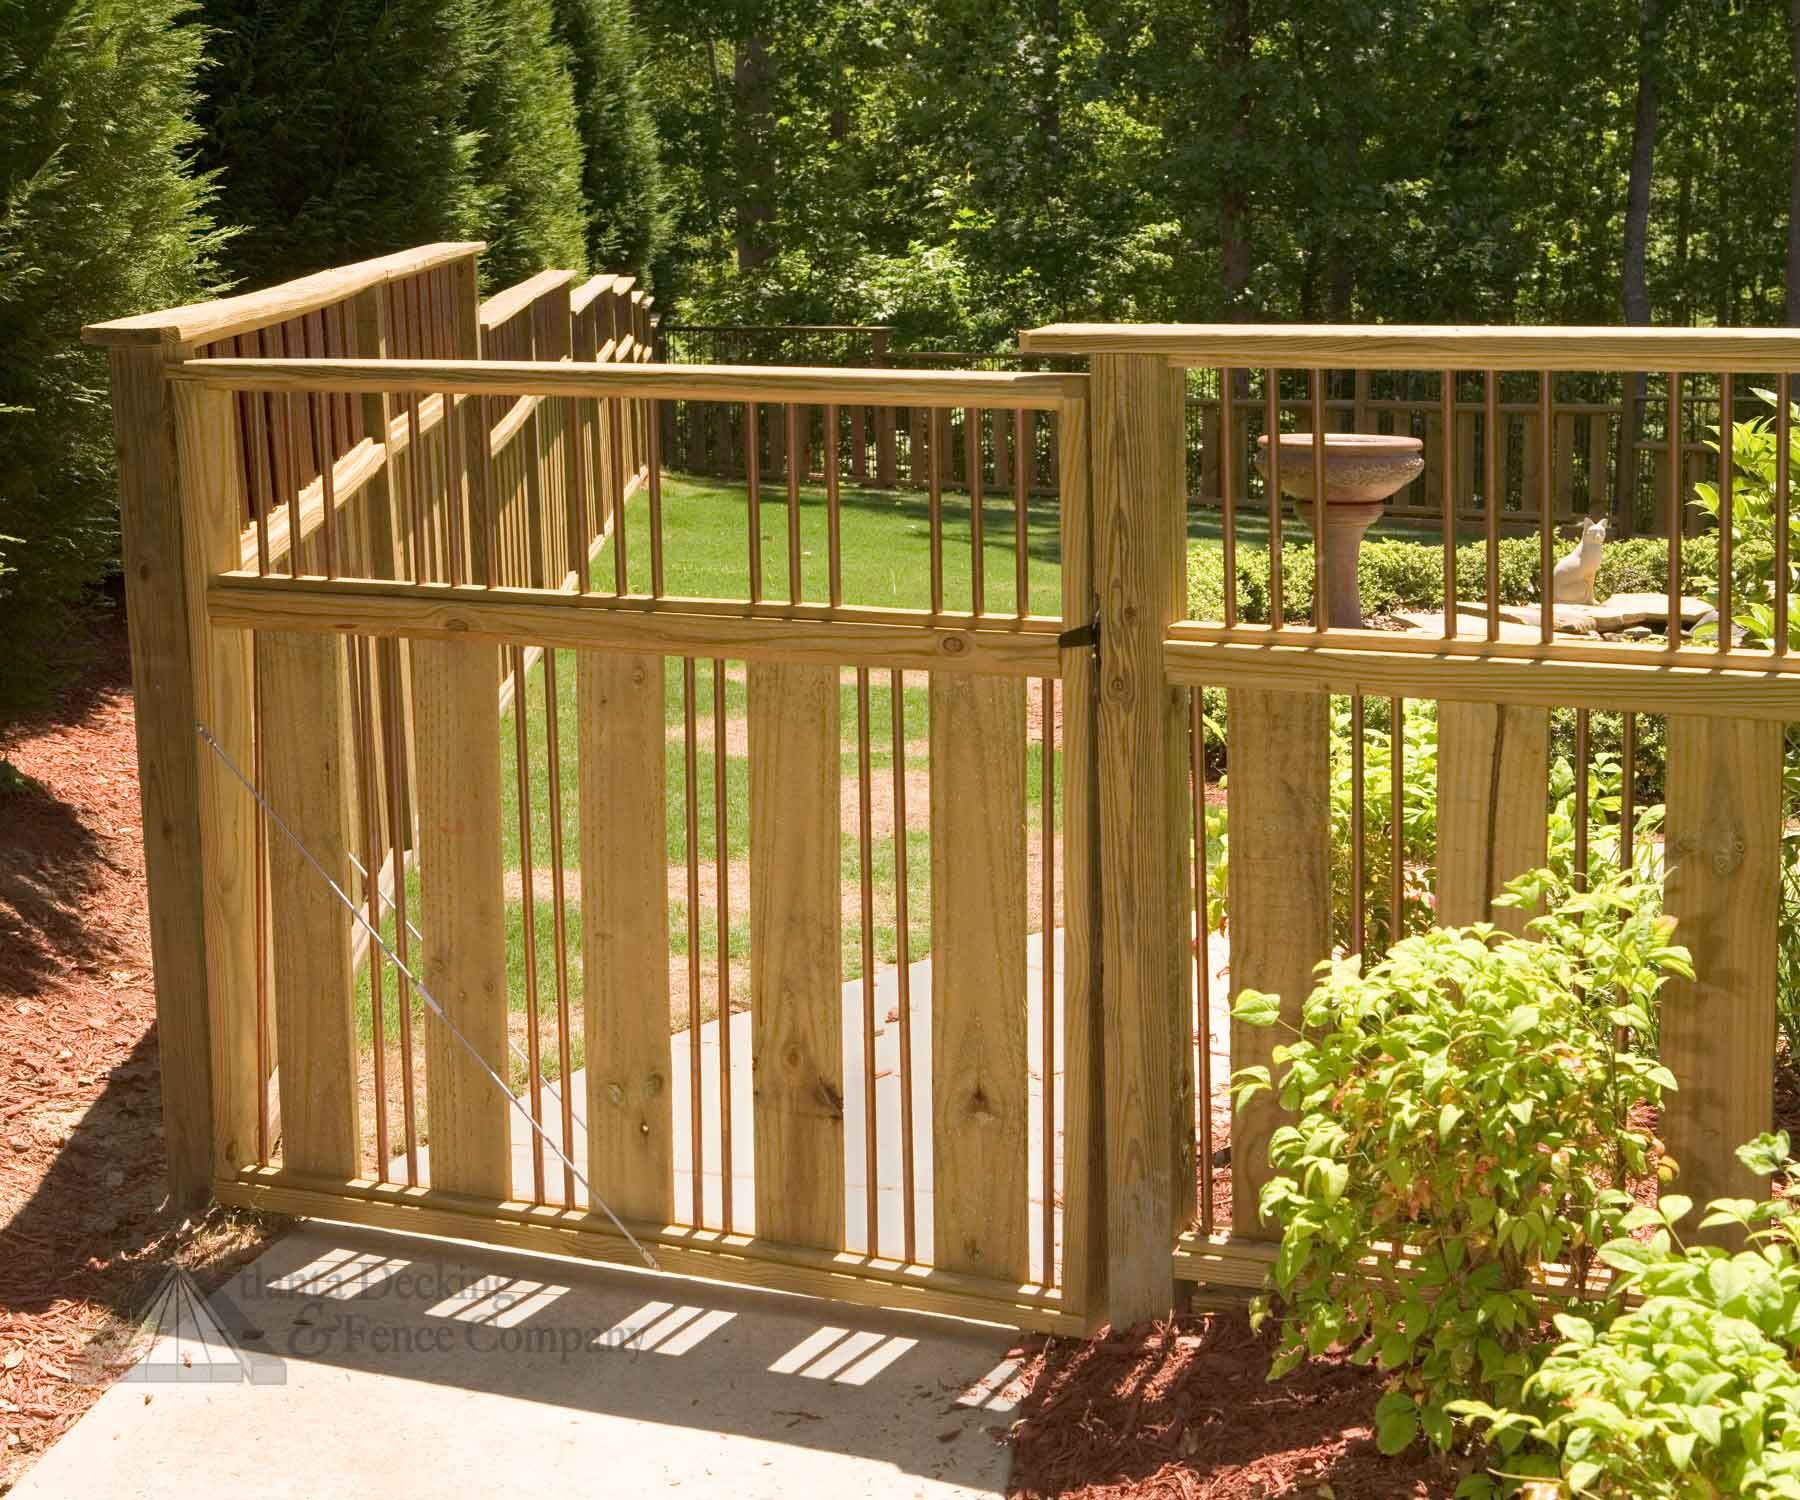 Fence Gate Design Ideas garden decor creative timber wooden driveway gate for your outdoor home decorating design ideas Fence Wooden Gate Designs